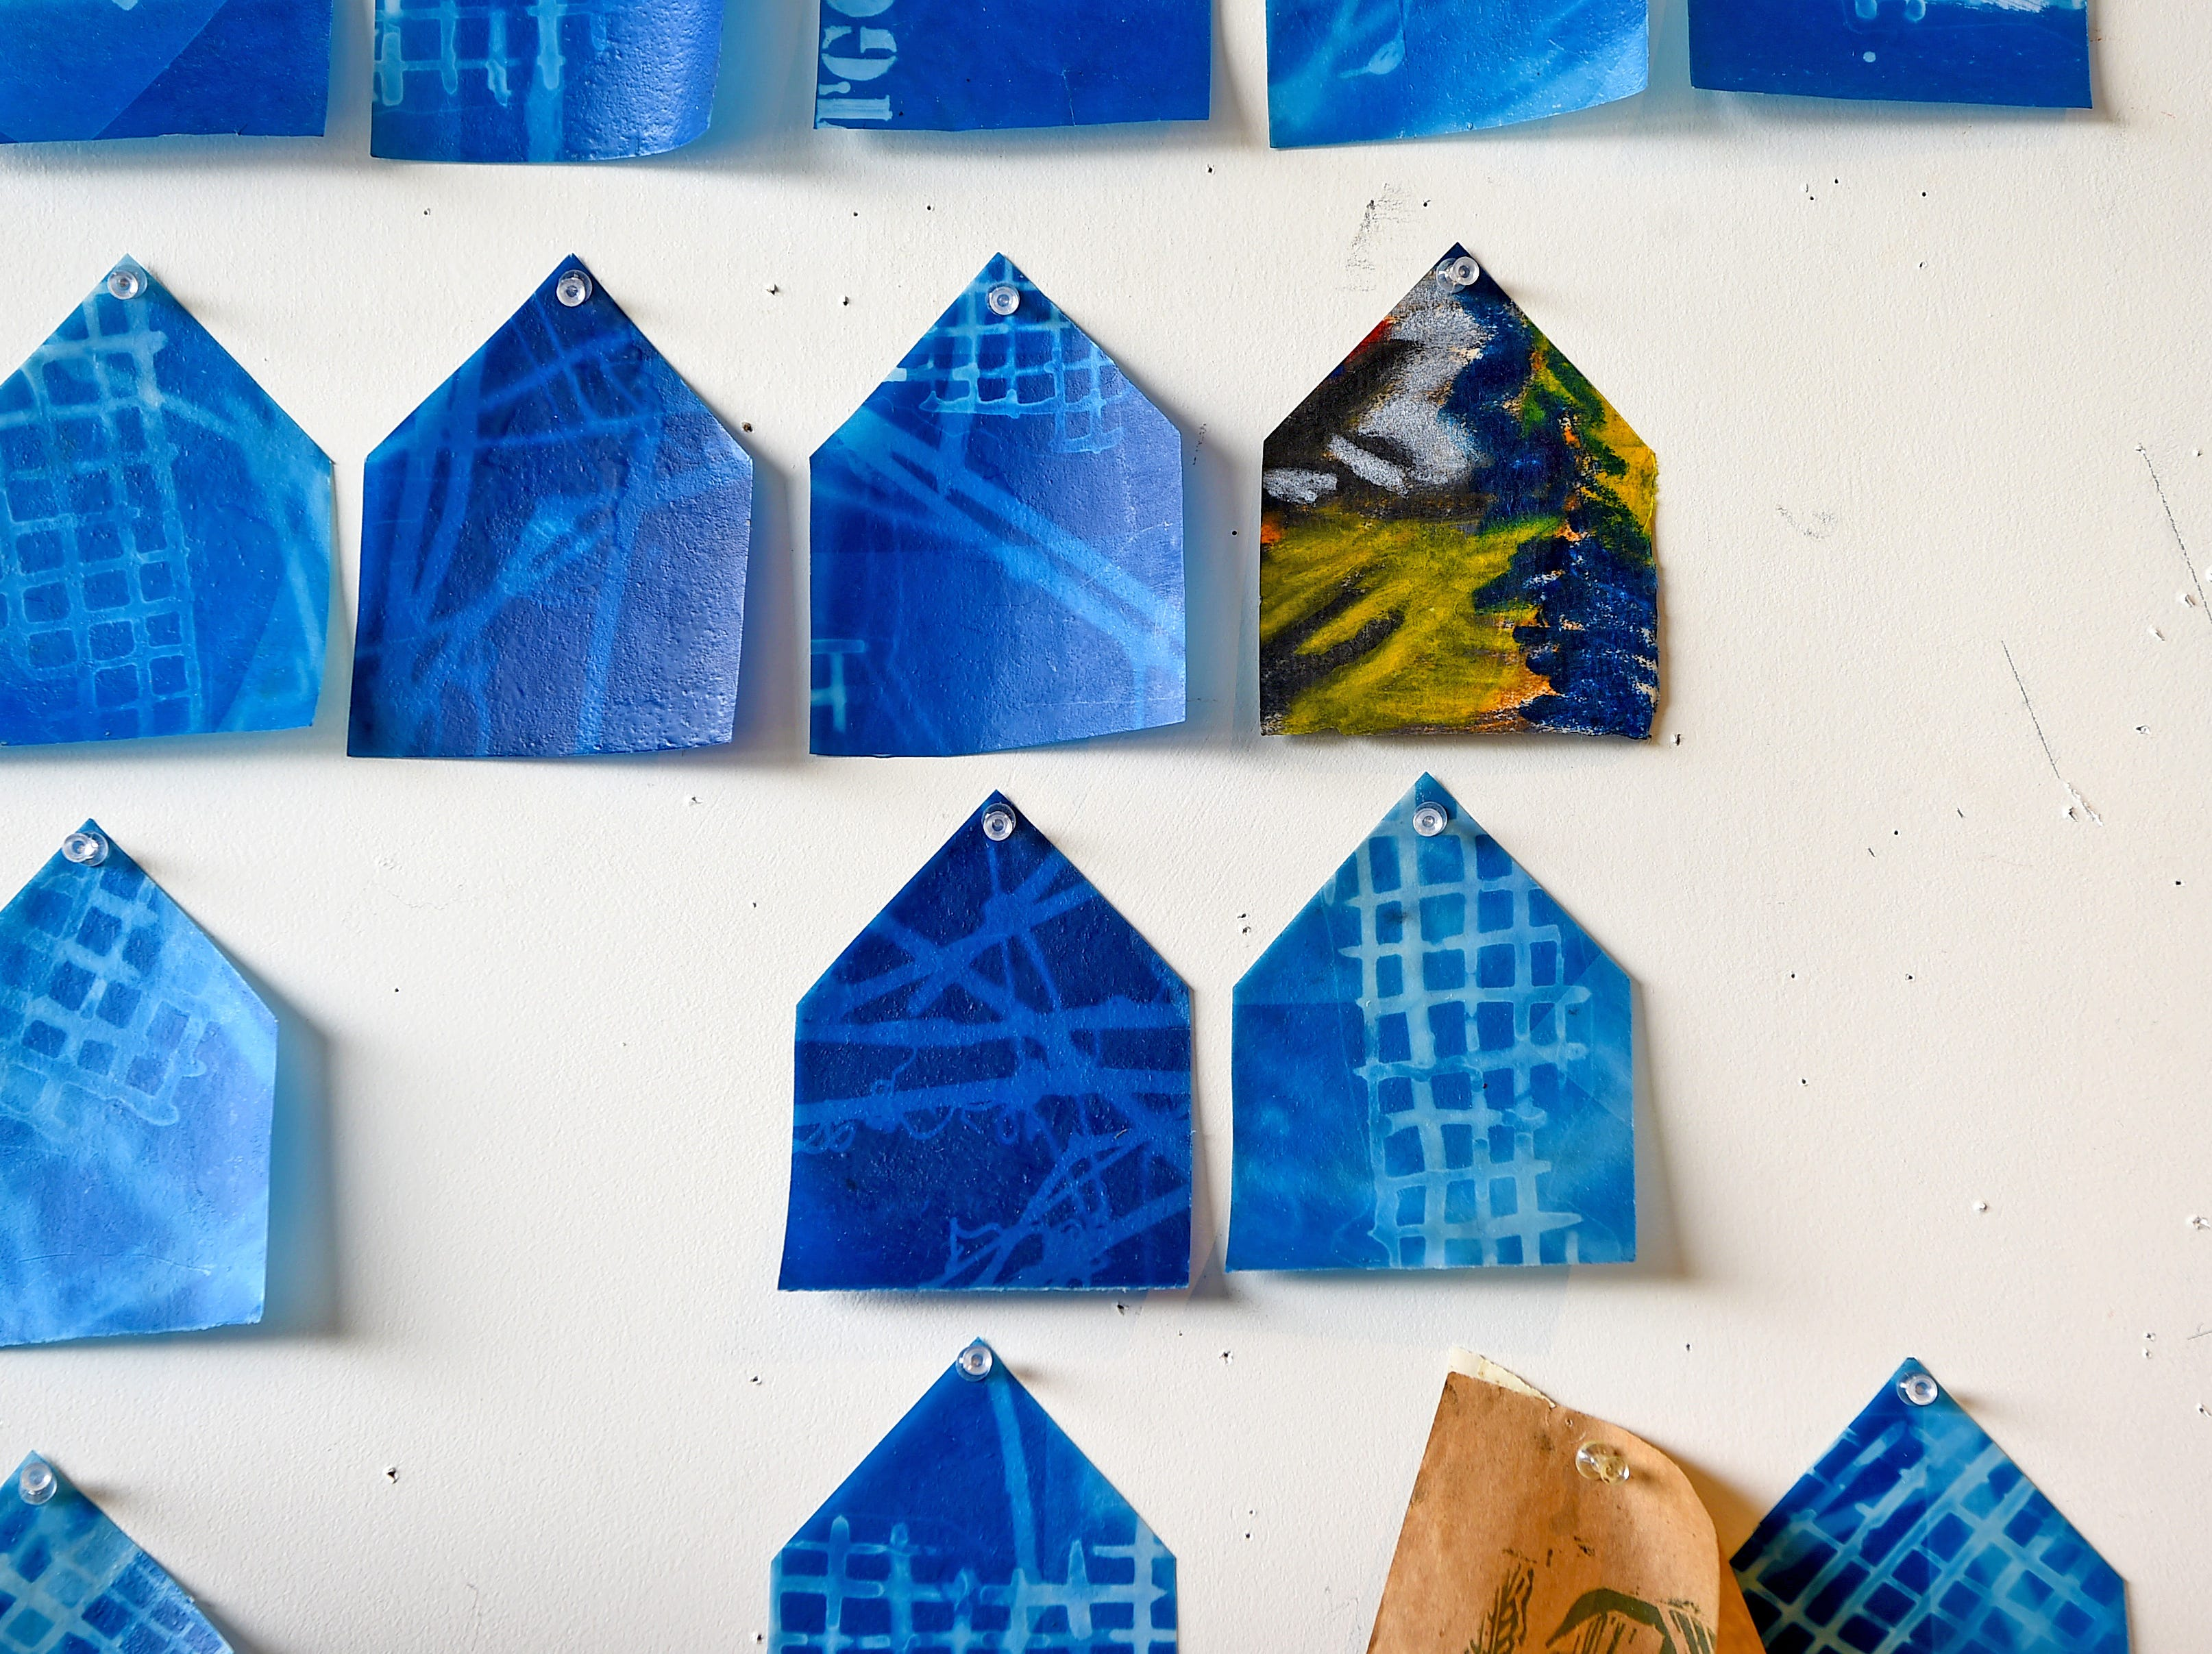 A detail of work by printmaker and Ithaca College lecturer  Pamela Drix. Drix's studio, Dock 6 Studio, is located in Artist Alley at South Hill.